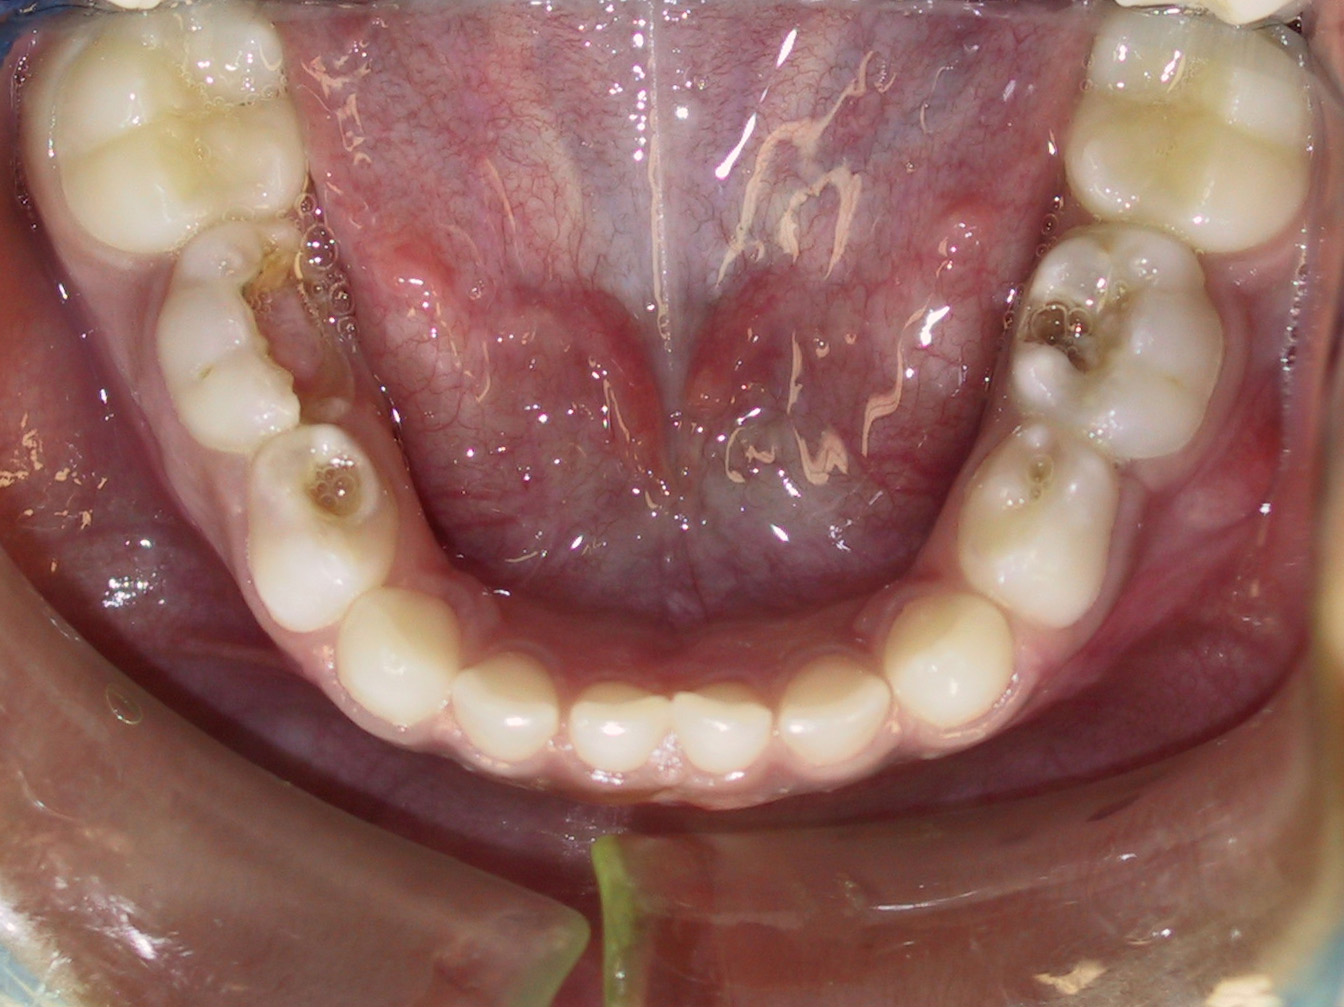 Pin small teeth with cavities on pinterest